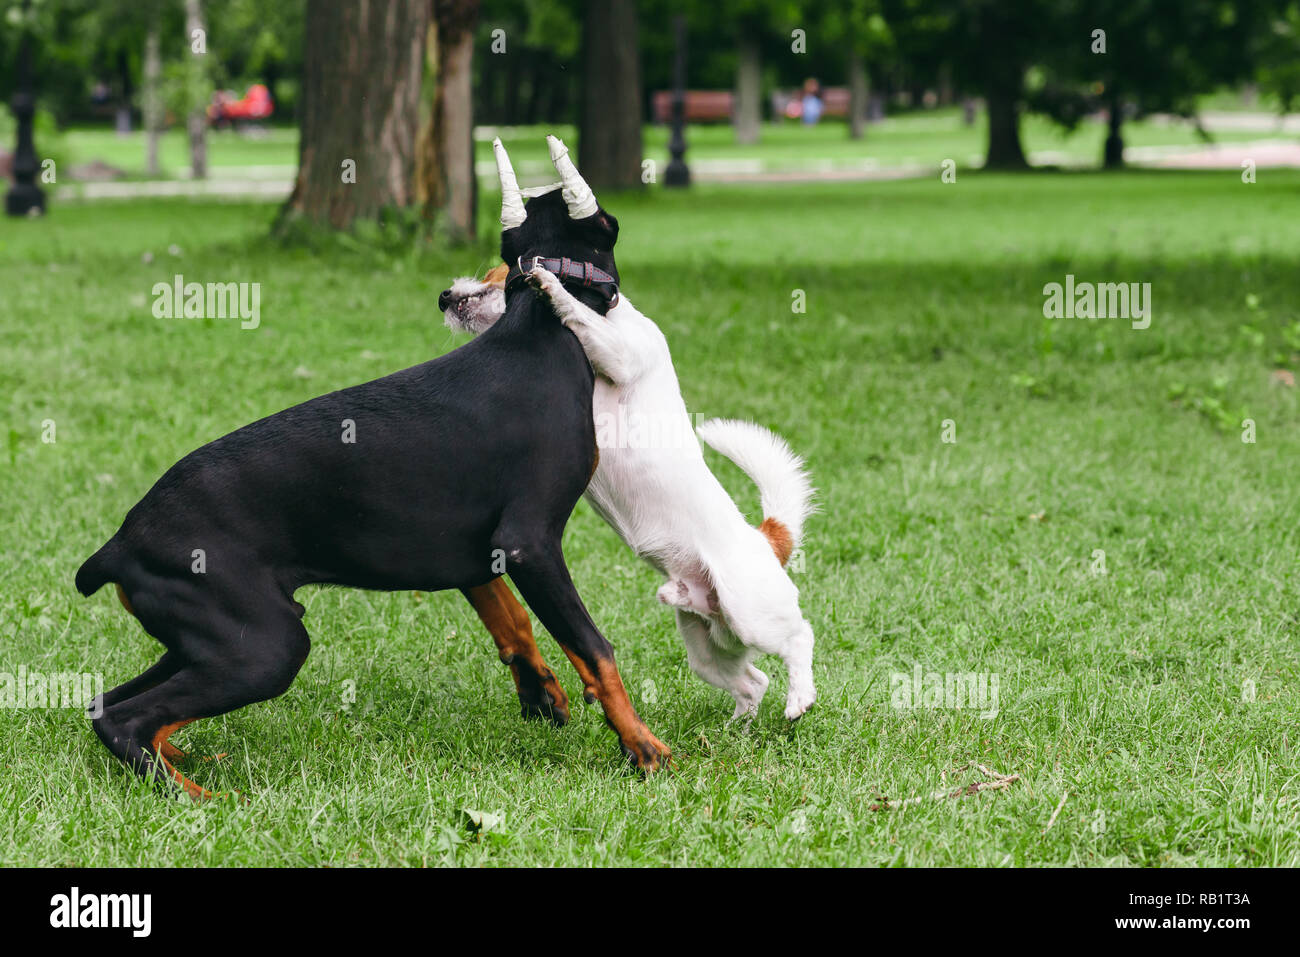 Doberman Pinscher with bandaged ears playing with small dog at park - Stock Image